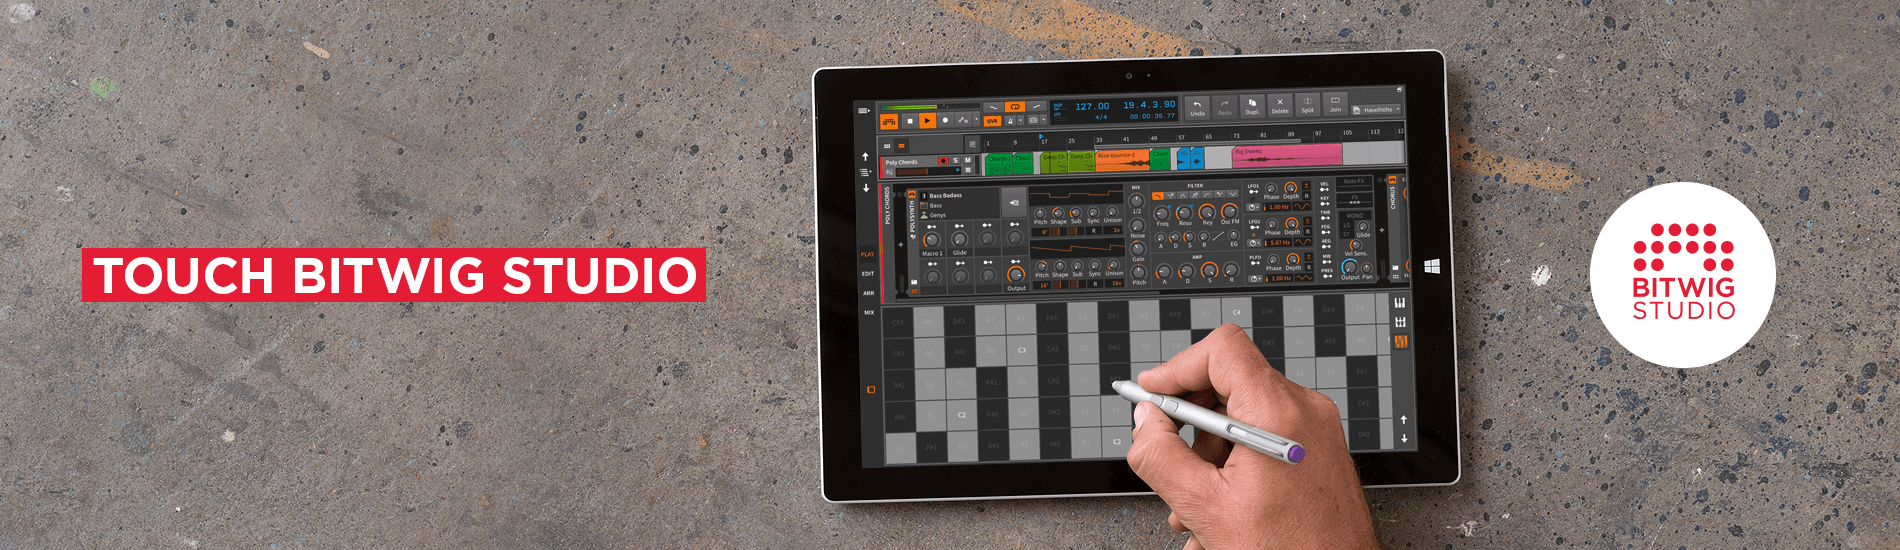 Bitwig Studio is a real touch DAW you can use today - CDM